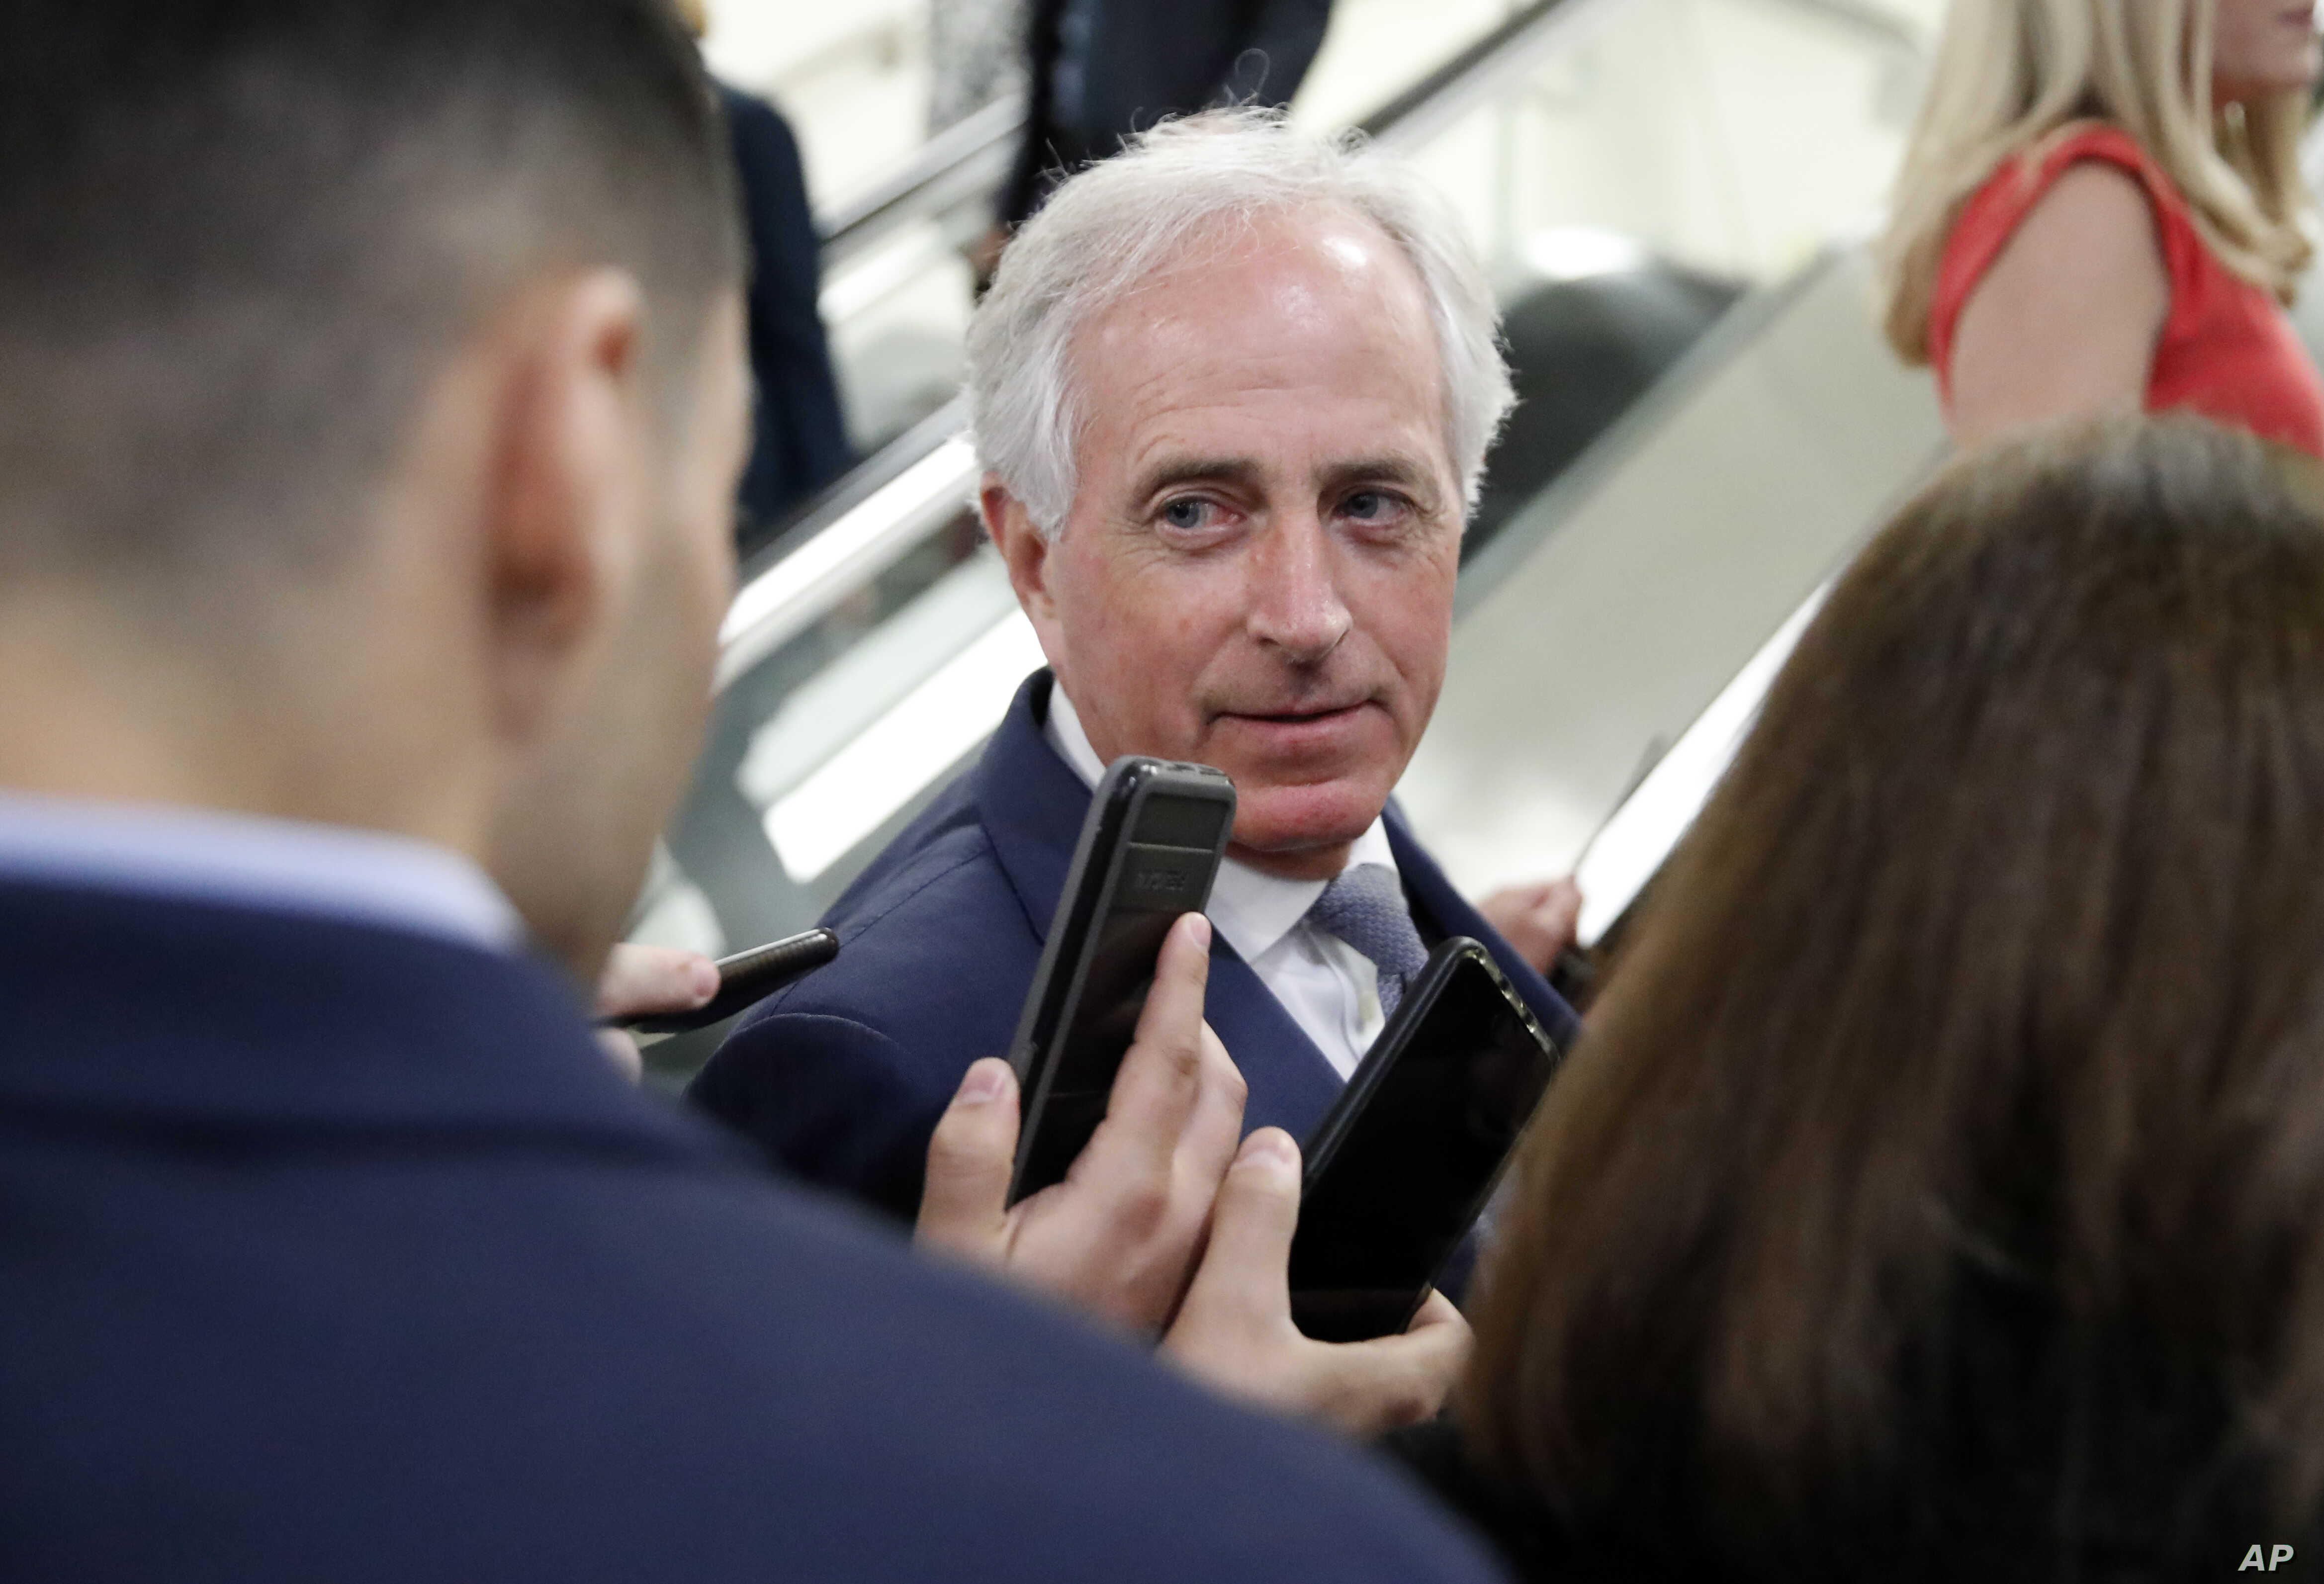 Sen. Bob Corker, R-Tenn., listens to a reporter's question on Capitol Hill, Oct. 3, 2018 in Washington.